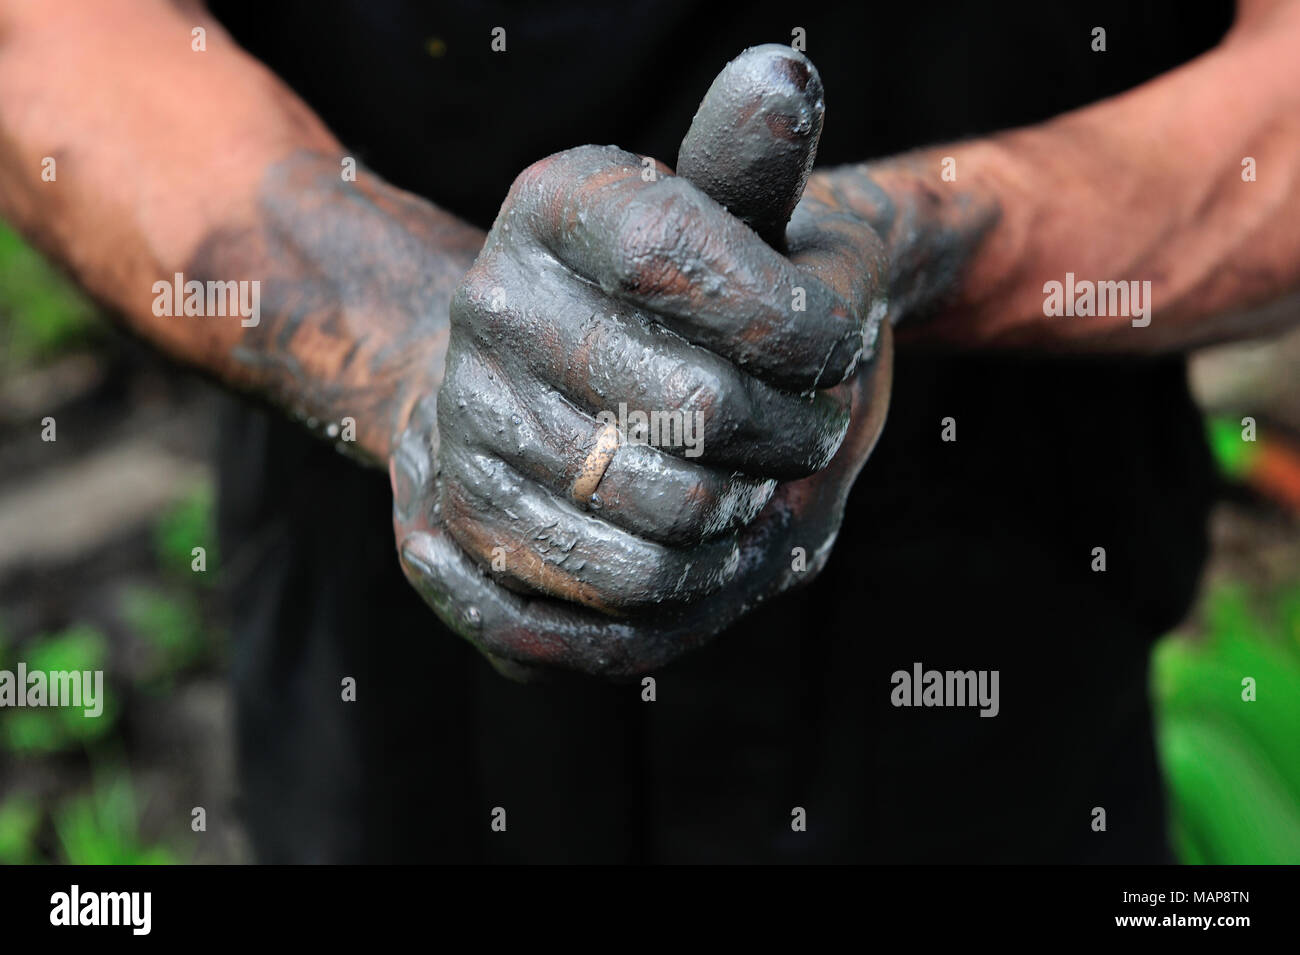 a person, a working, arm, black works, craftemployment, illegally employment, illicit workprofessional life, professionally, hard, danger, work - Stock Image